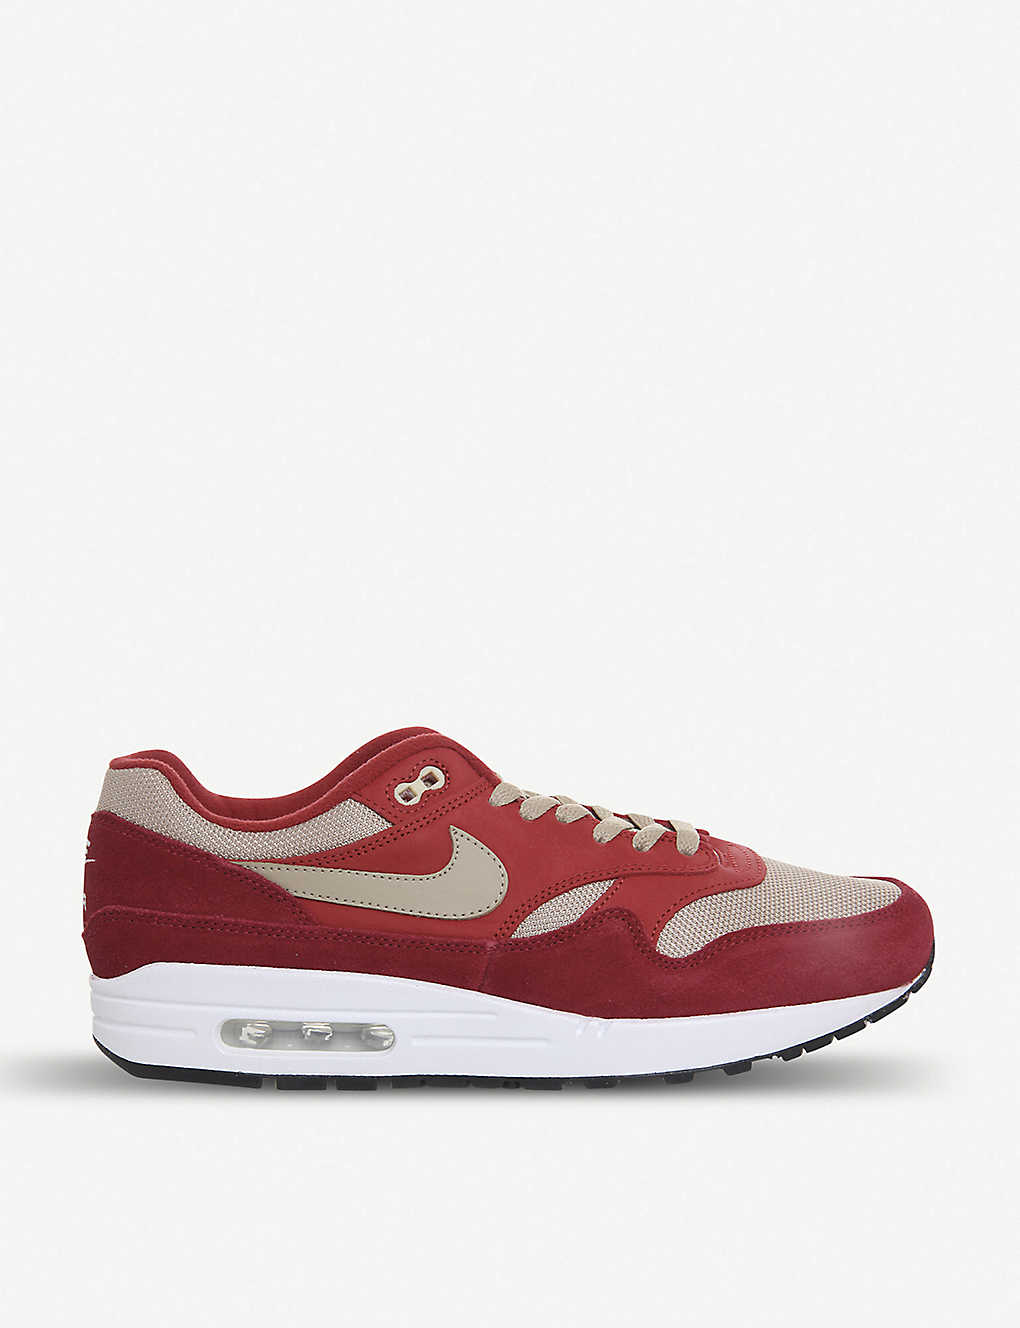 9318d67364f2 NIKE - Air Max 1 leather trainers